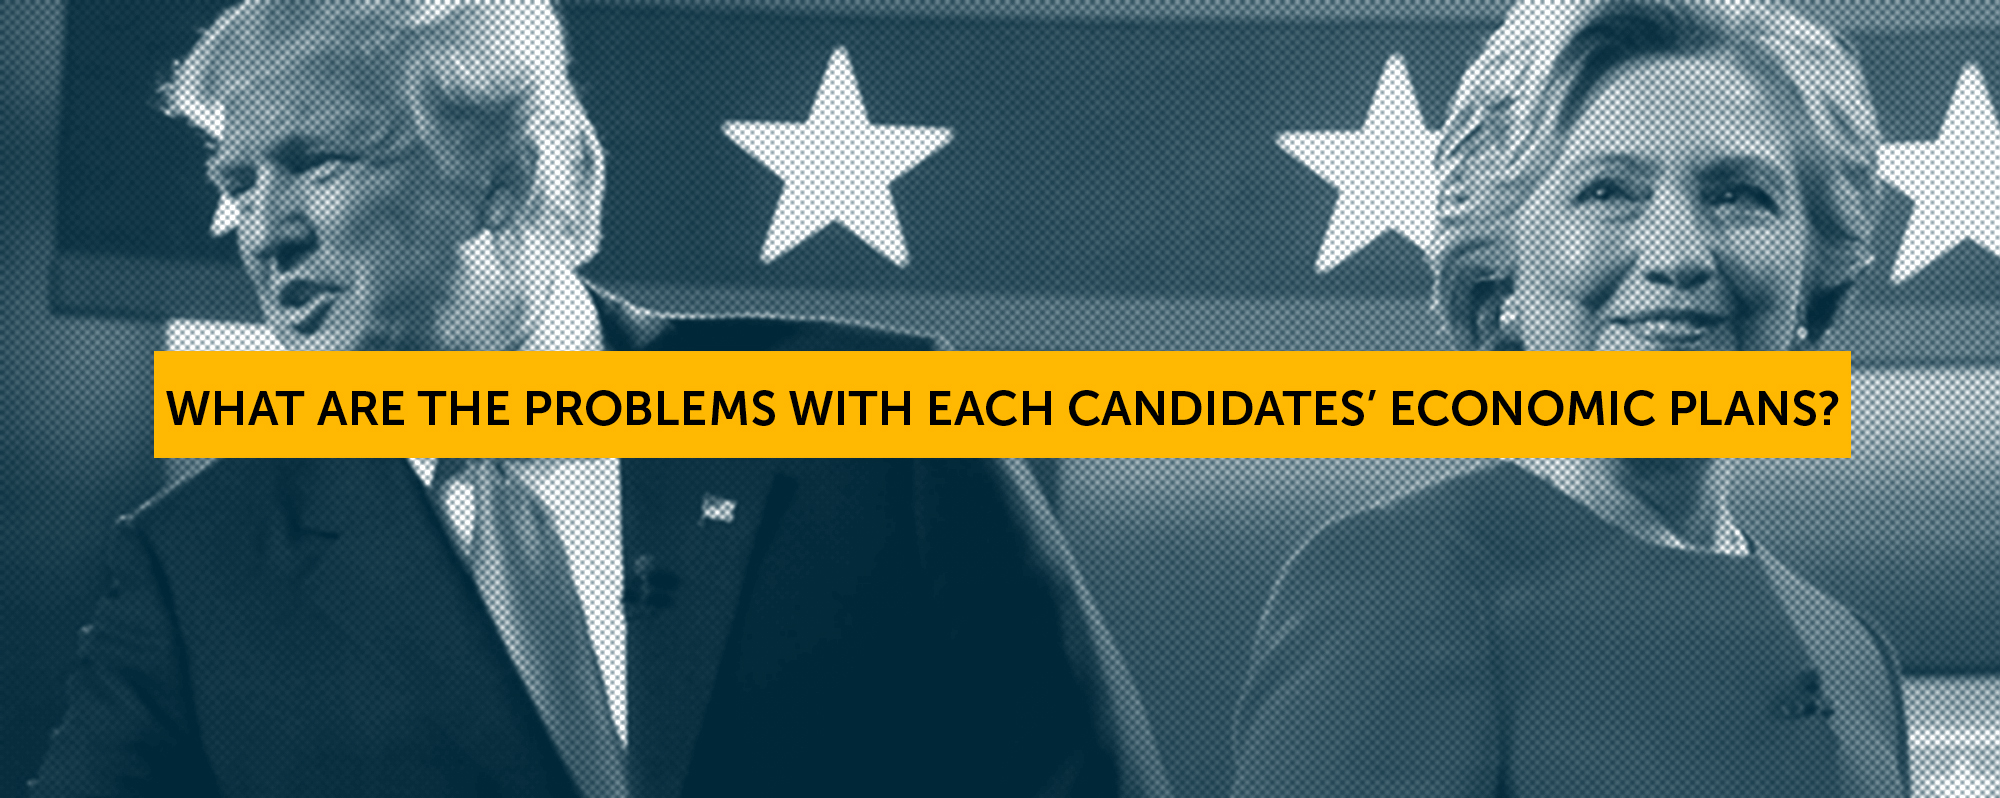 WHAT ARE THE PROBLEMS WITH EACH CANDIDATES' ECONOMIC PLANS?